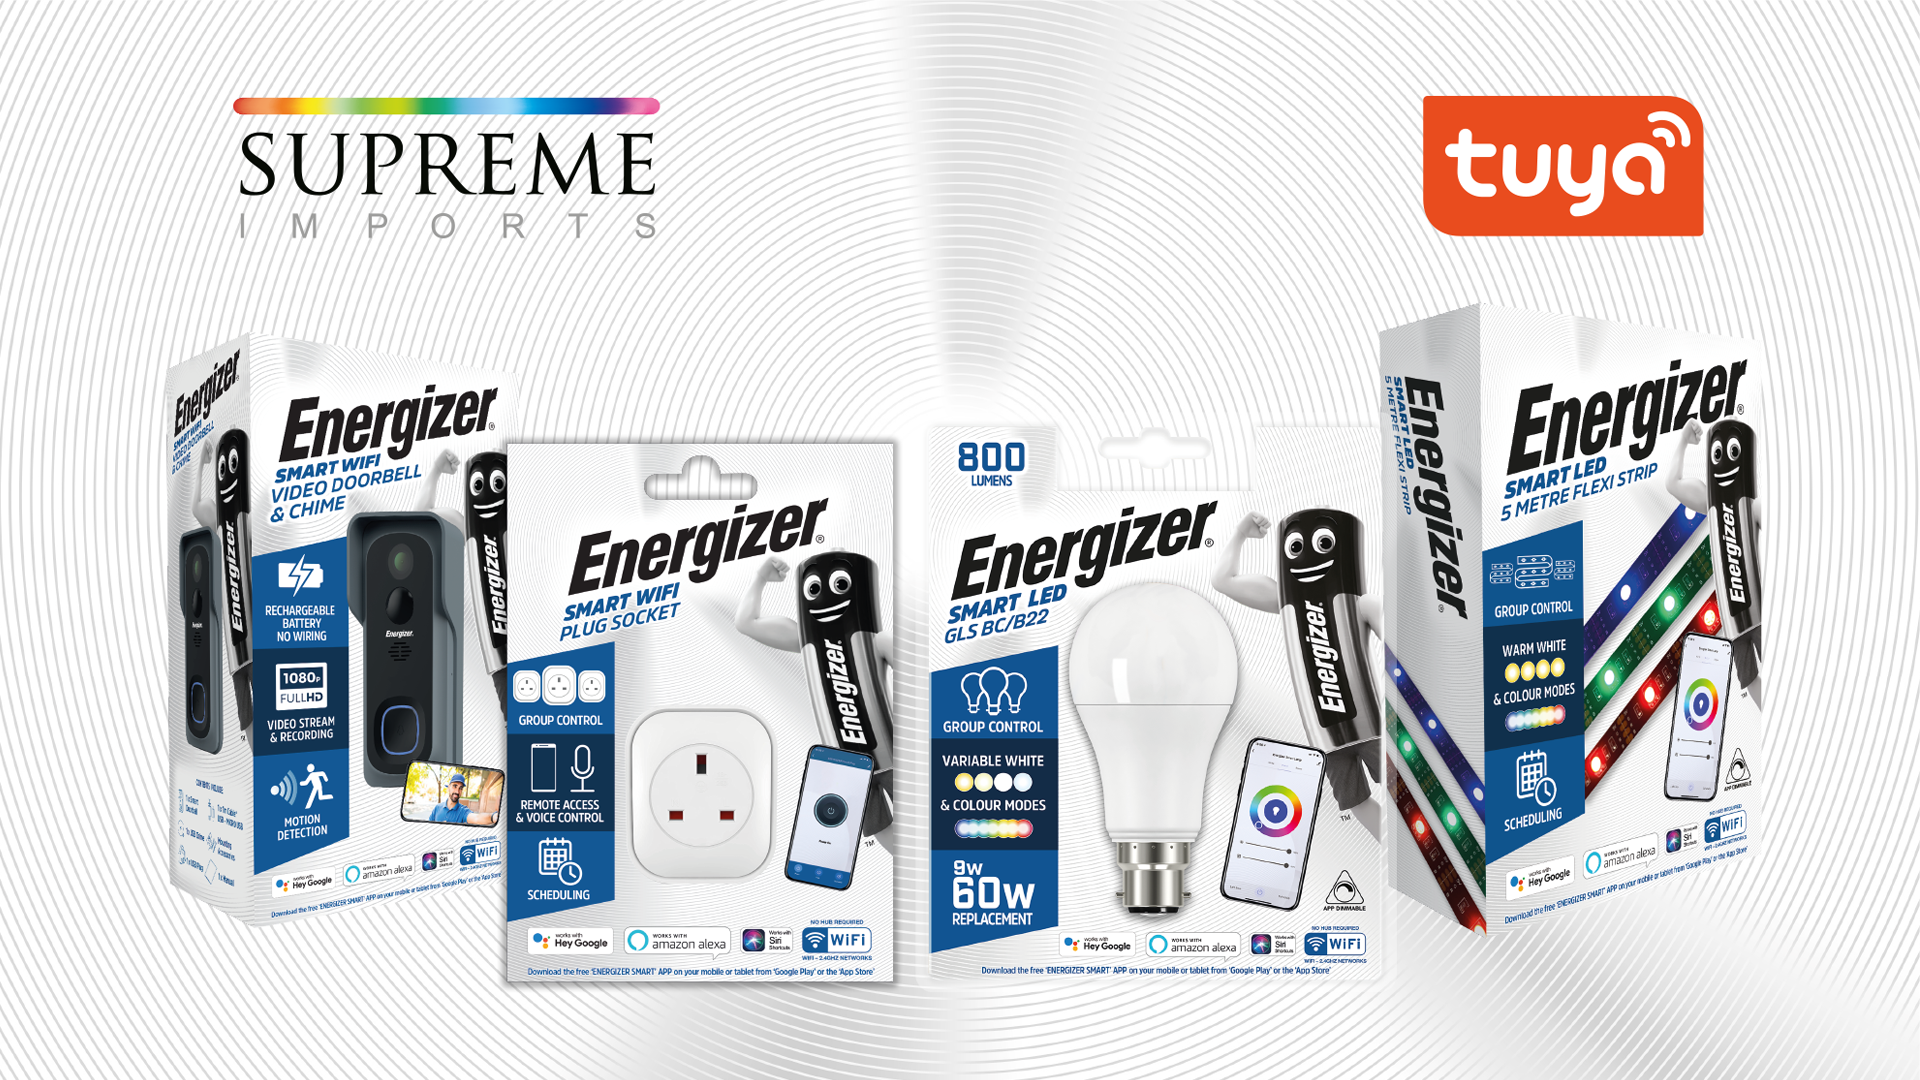 (Energizer Smart Home Products Powered by Tuya)